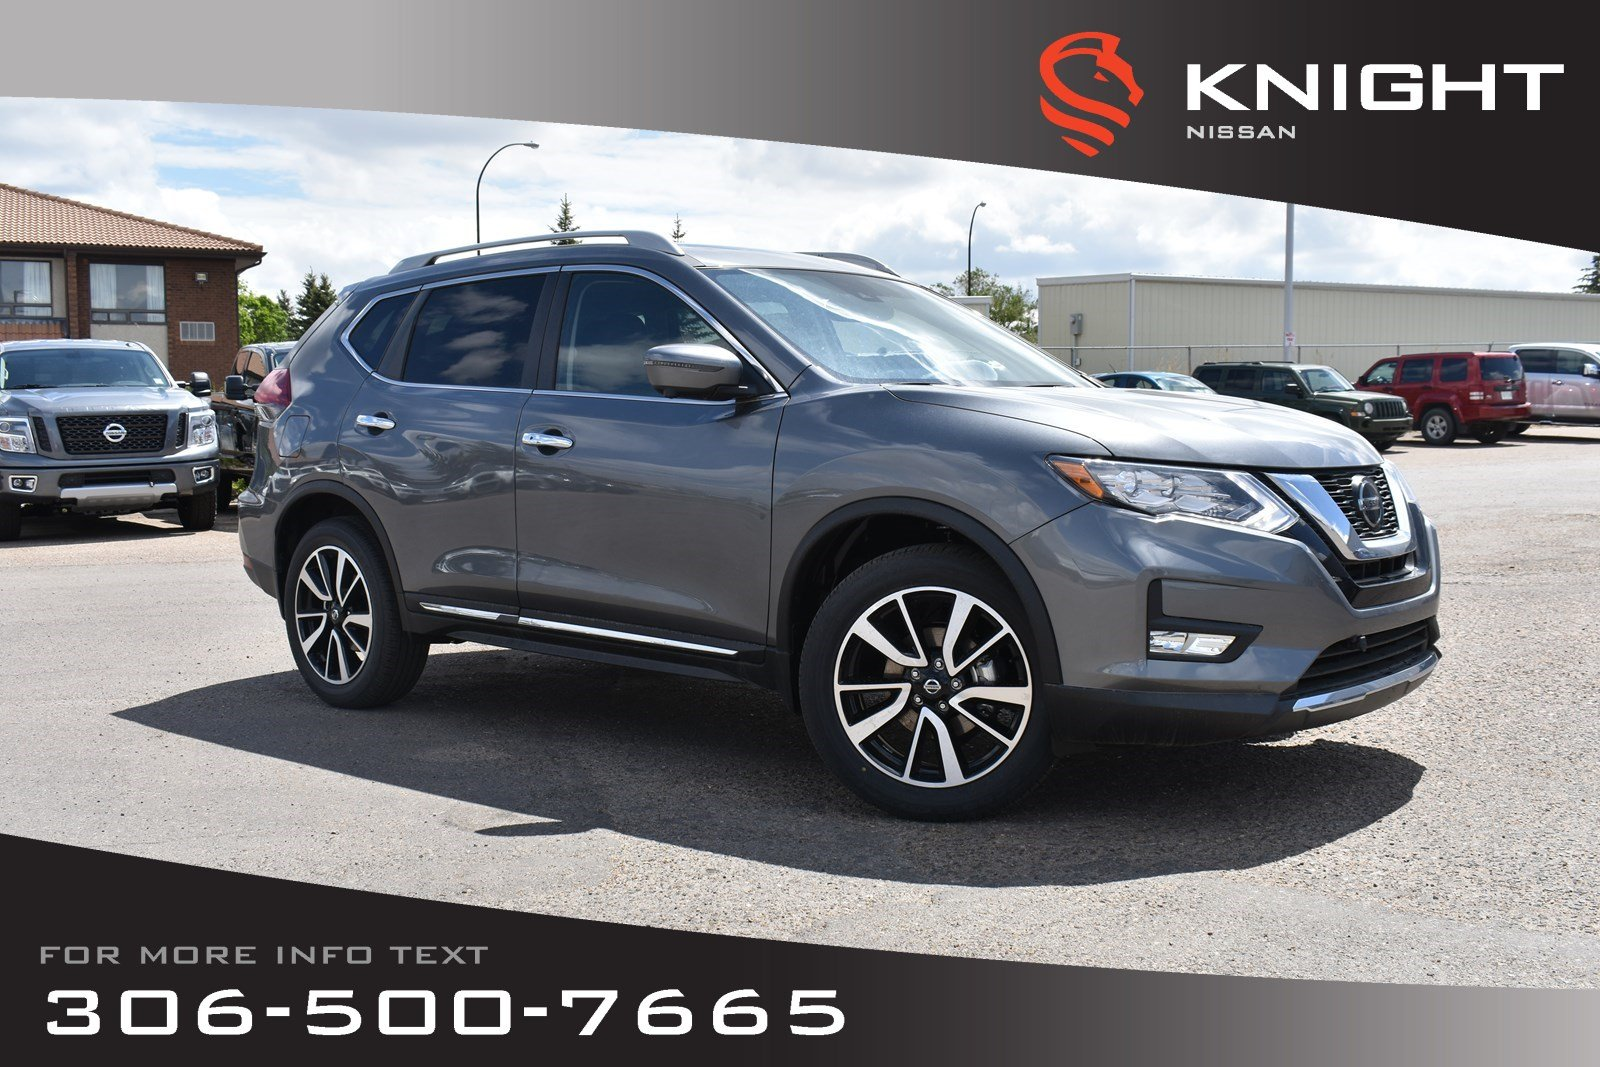 New 2019 Nissan Rogue SL Platinum Leather | Navigation | Remote Start | Heated Seats & Steering Wheel | Bose |